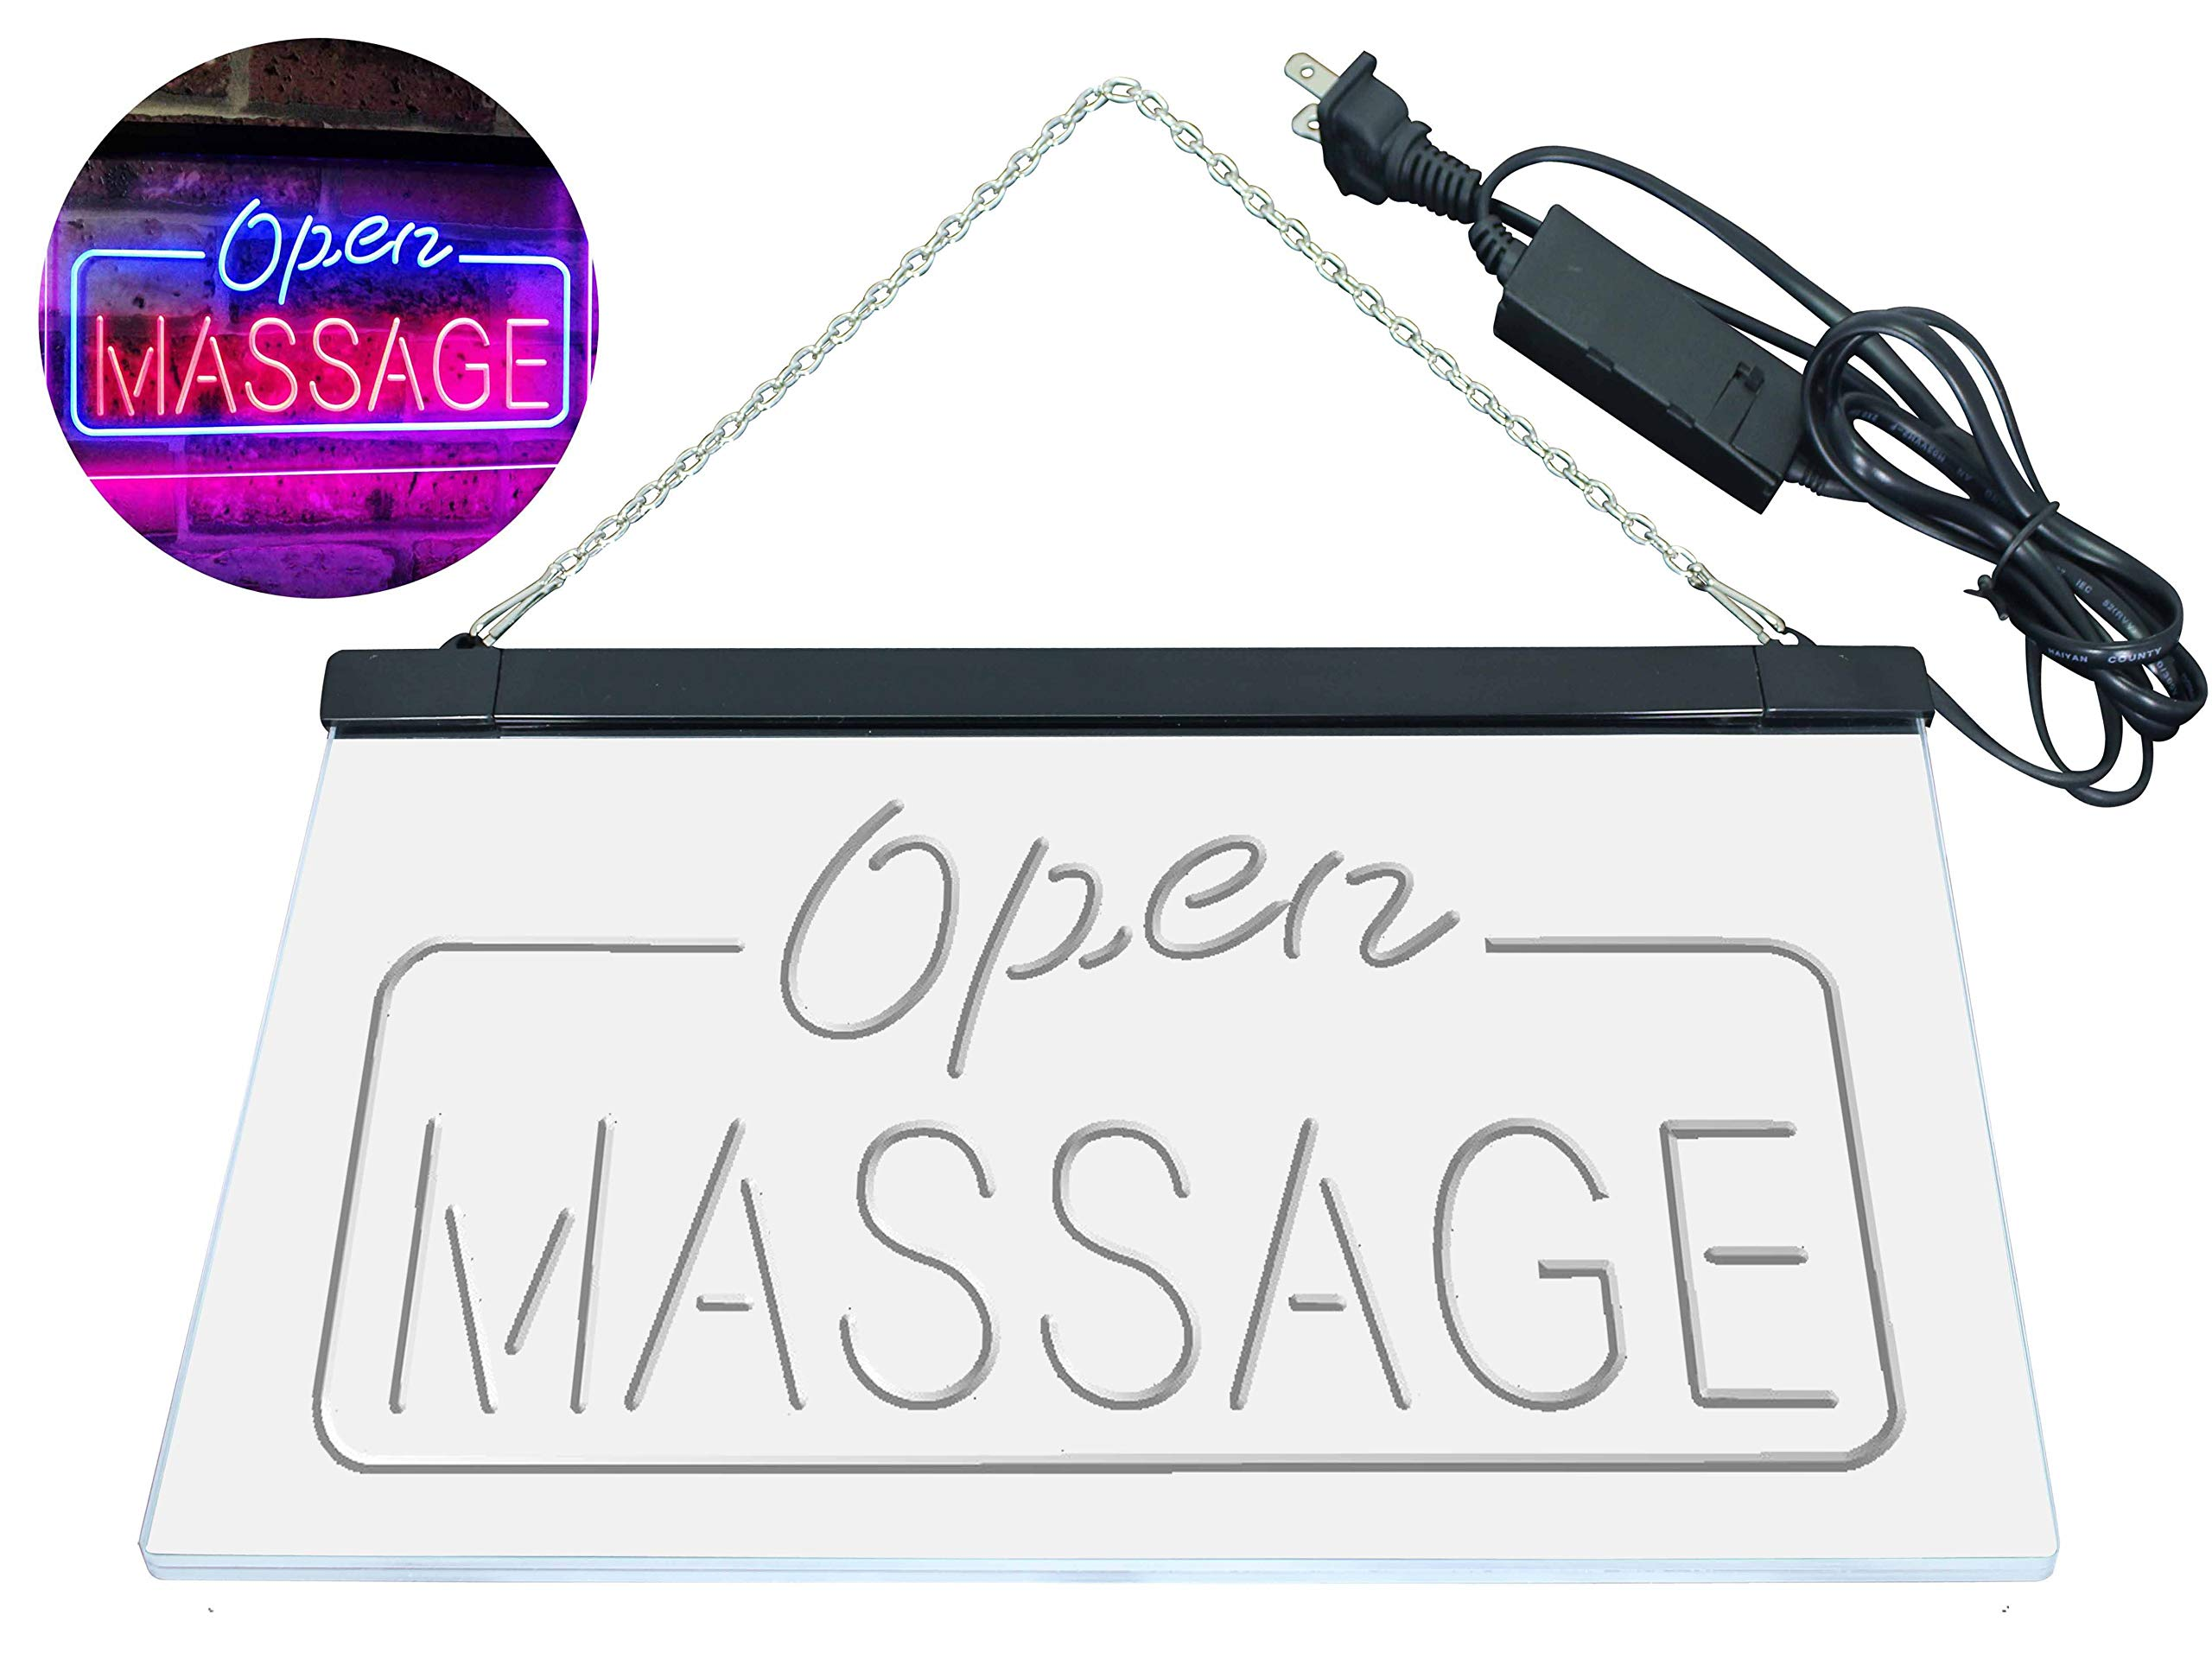 AdvpPro 2C Massage Therapy Open Walk-in-Welcome Display Body Care Dual Color LED Neon Sign Blue & Red 12'' x 8.5'' st6s32-i0365-br